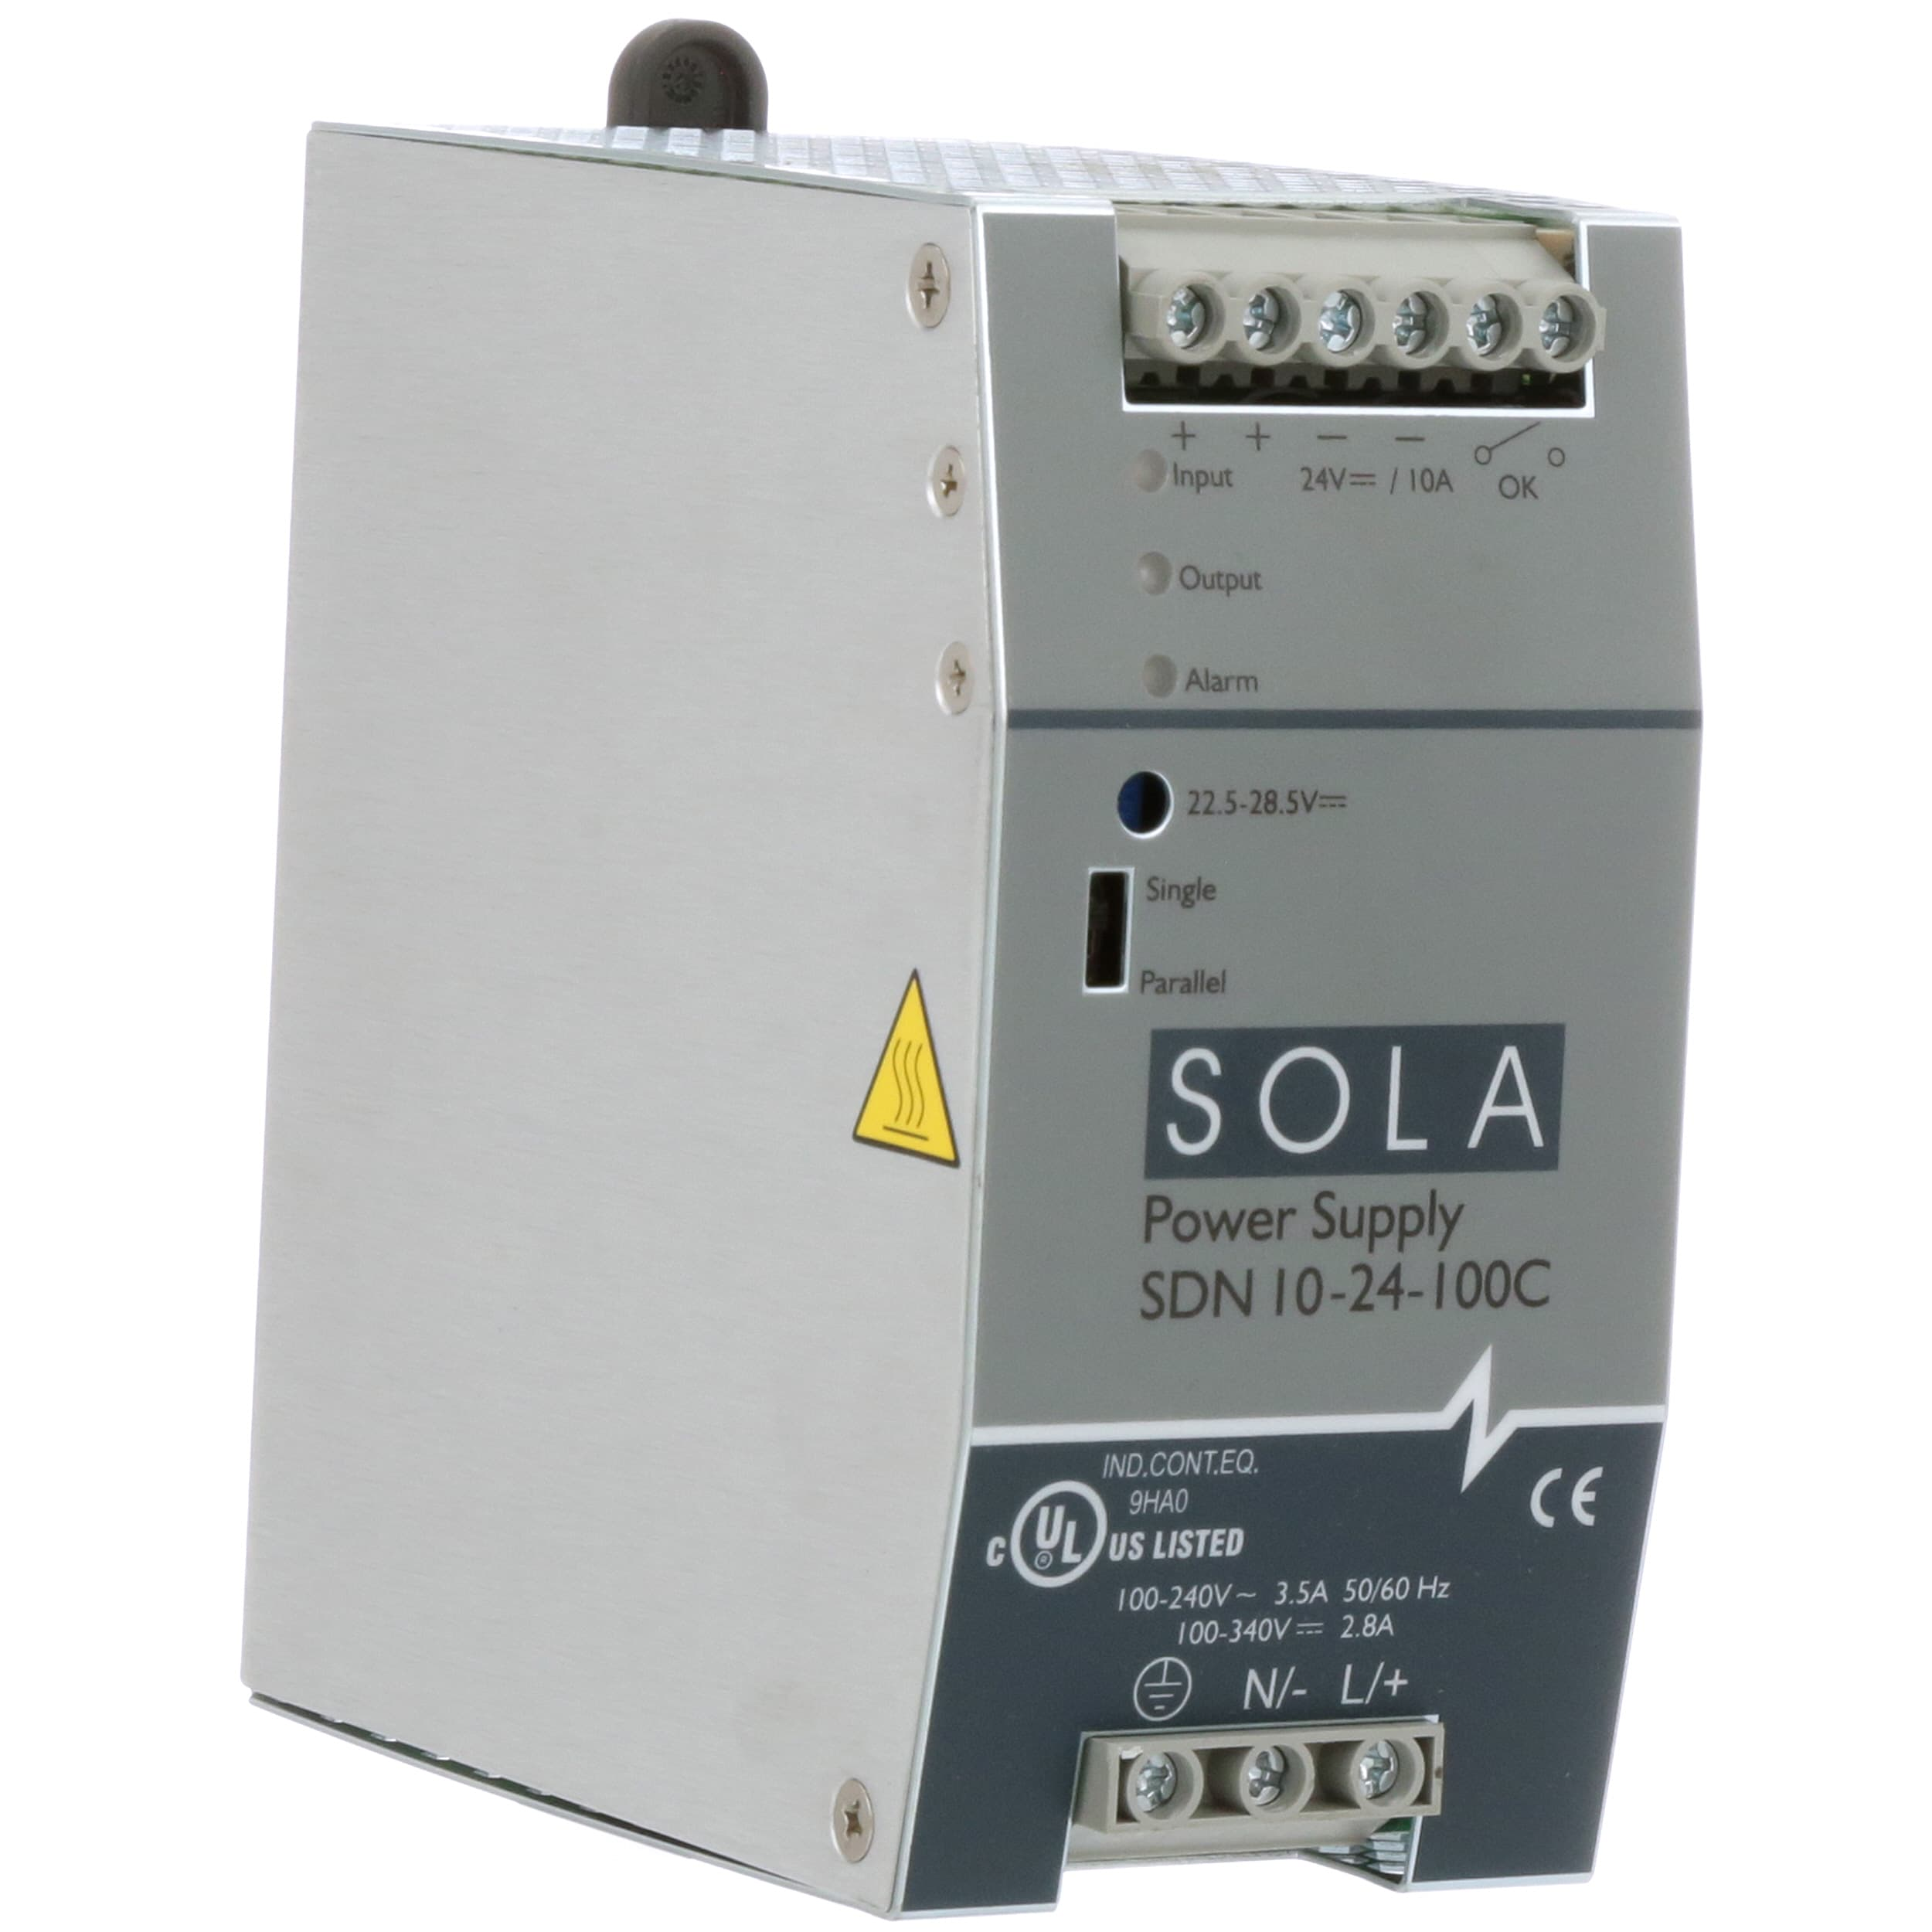 Solahd Sdn10 24 100c Power Supply Ac Dc 24v 10a 85 264v In Telephone Ring Generator Using Switching Enclosed Din Rail Pfc 240w Sdn Series Allied Electronics Automation